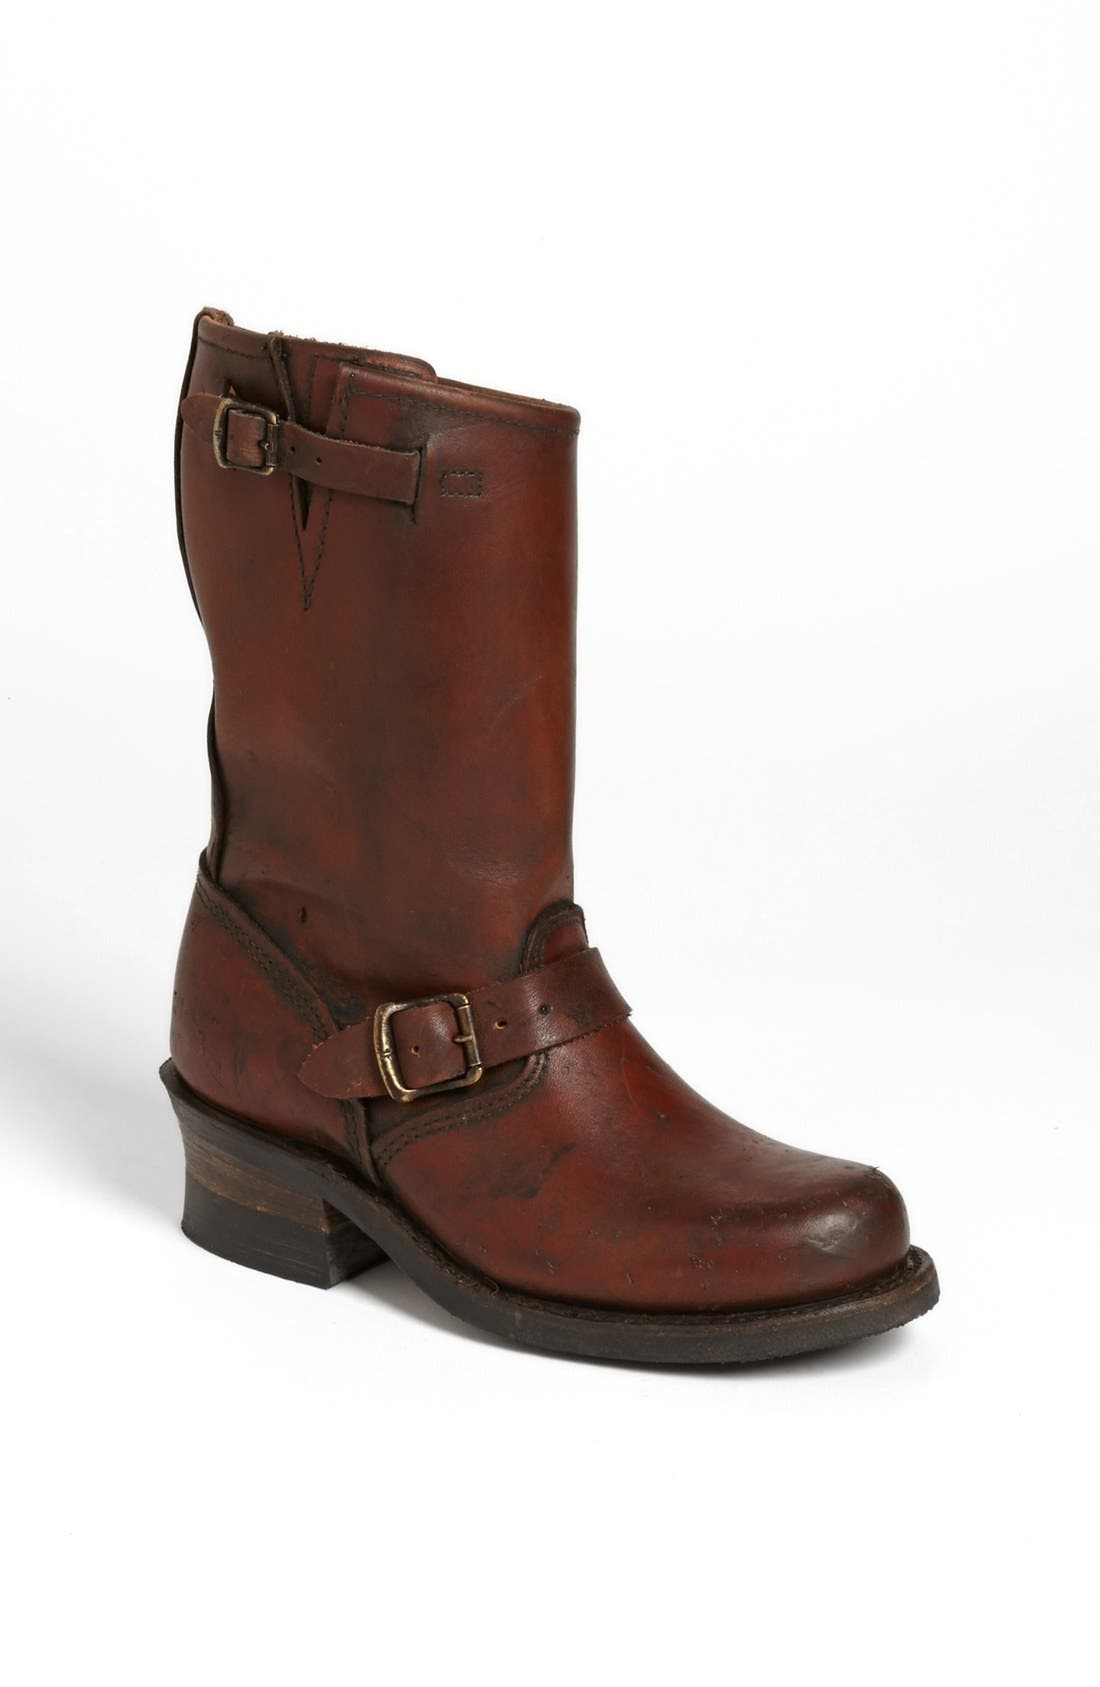 Alternate Image 1 Selected - Frye 'Engineer 12R' Boot (Limited Edition)